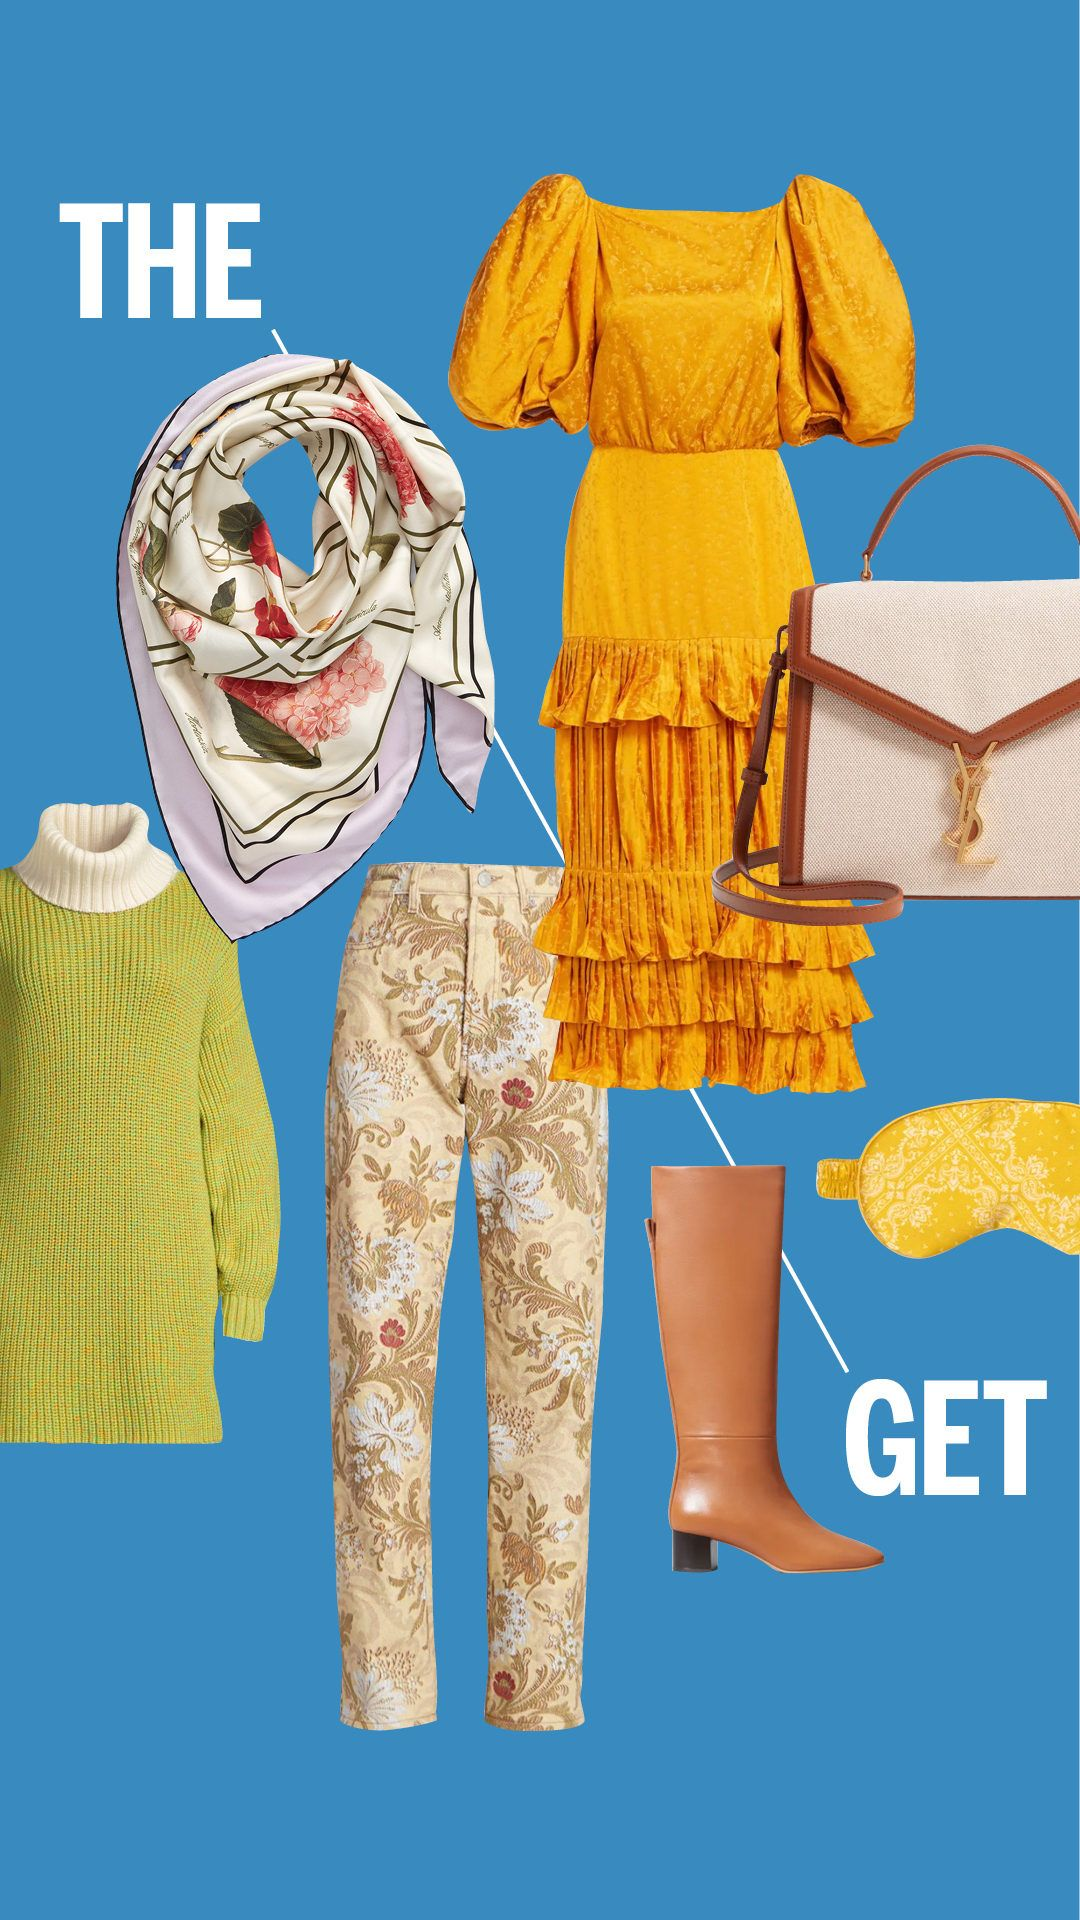 The Get: Shop Fashion Week's Vintage-Inspired Trend